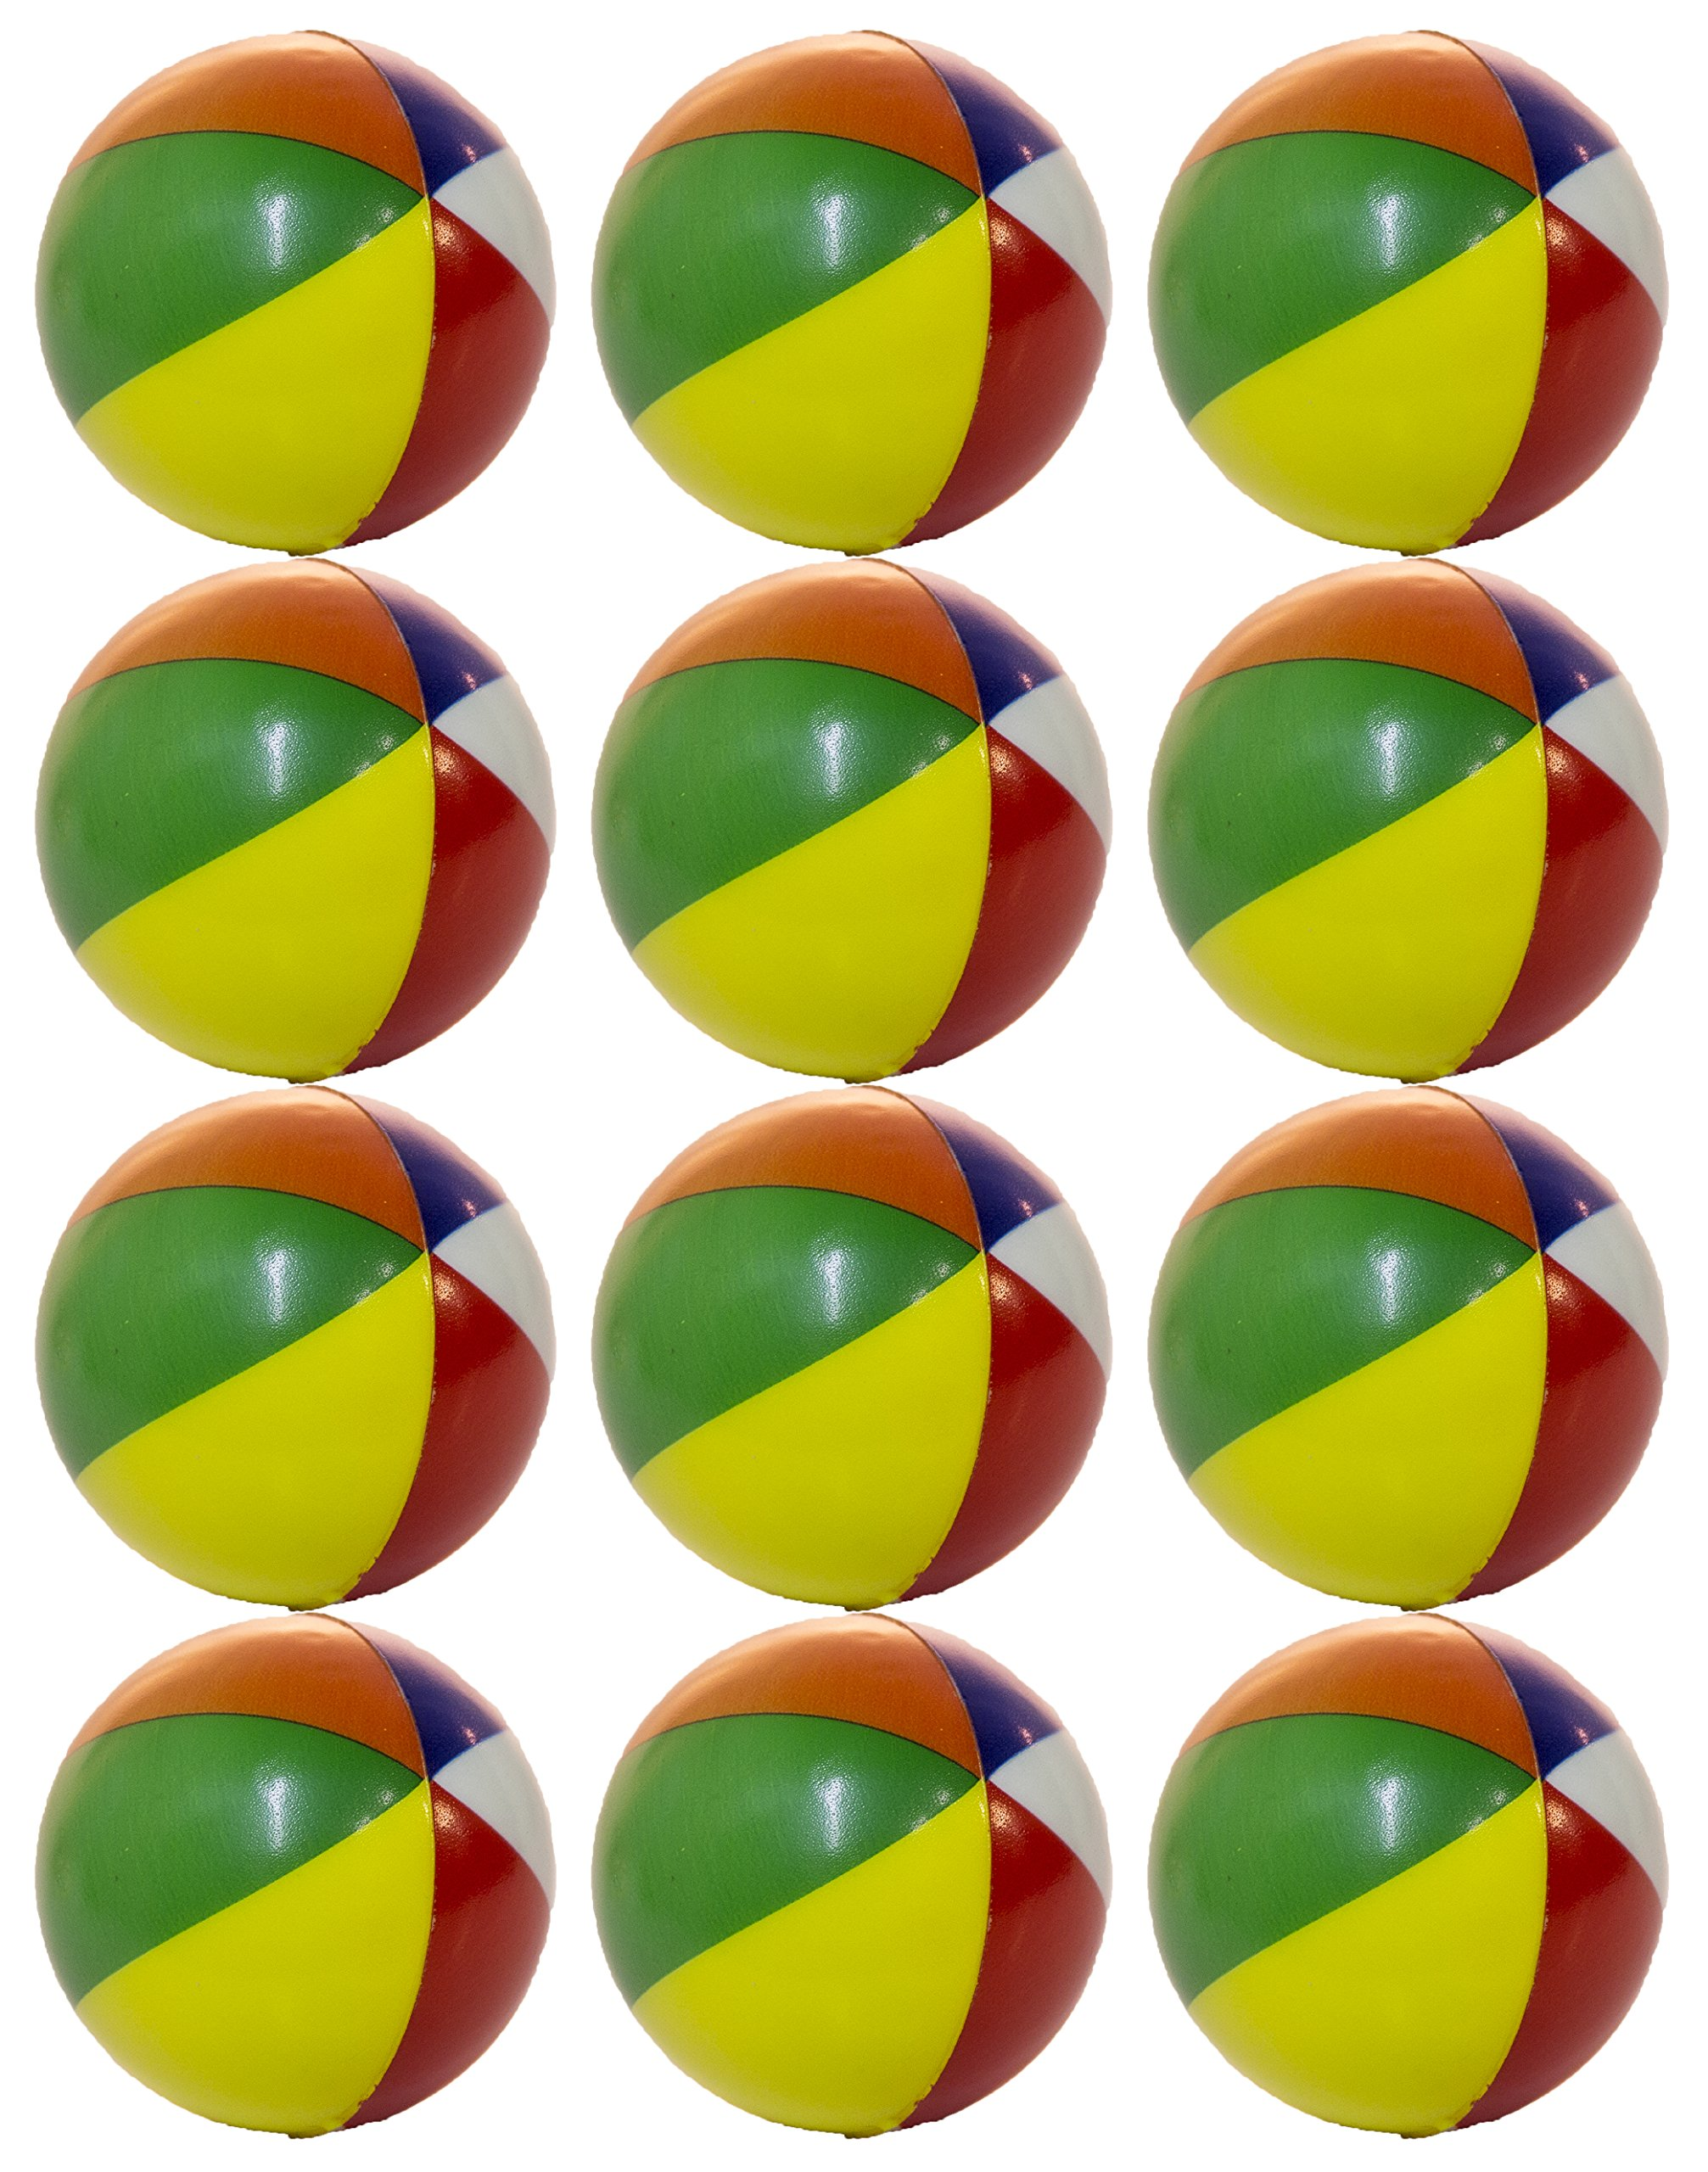 Set of 12 Mini Beach Ball 2 Inch Squeezable Stress Balls